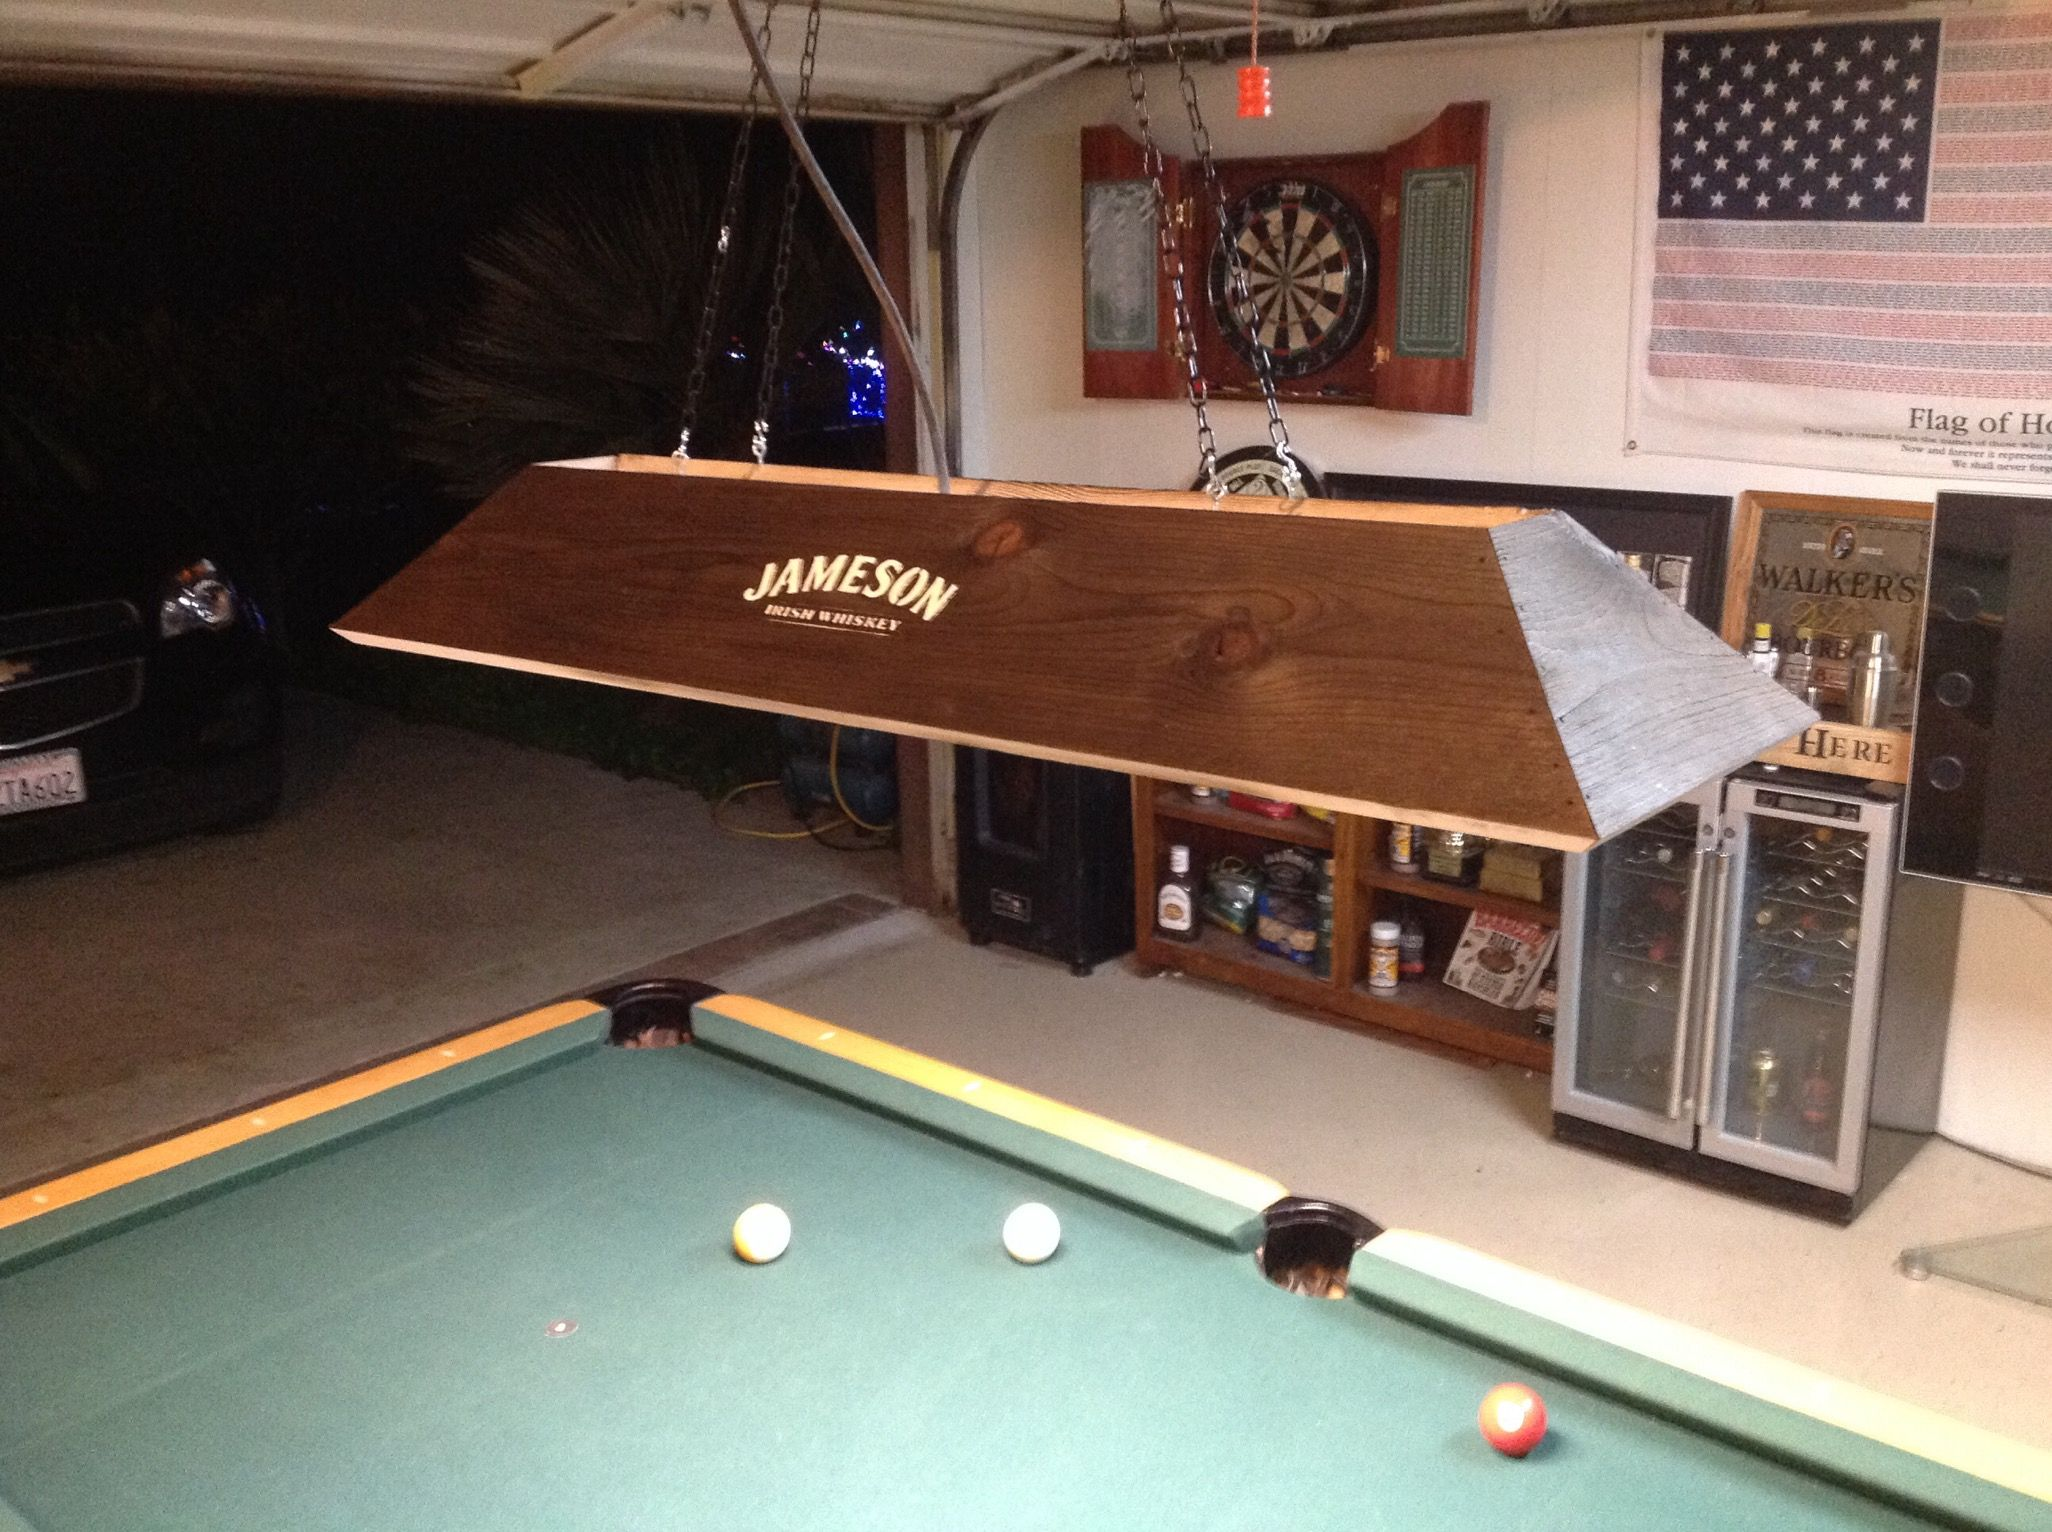 Jameson irish whiskey pool table light mancave lights custom jameson irish whiskey pool table light mozeypictures